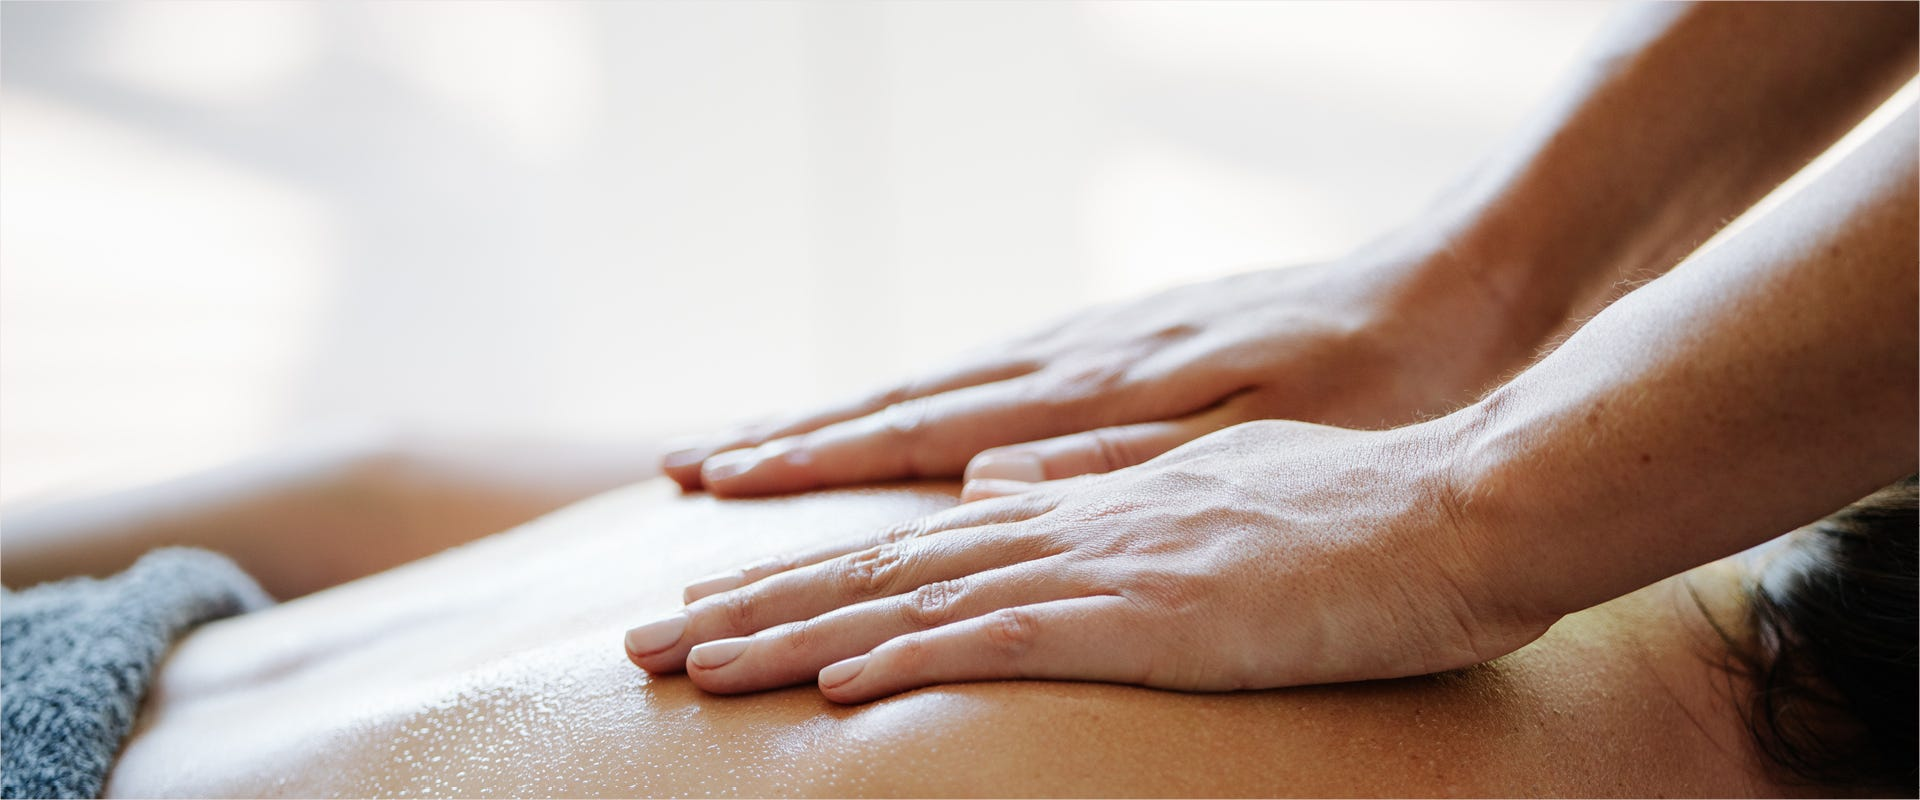 Jade stones are used during an Organic Relax Massage, which is part of endota's Surrender Spa Package